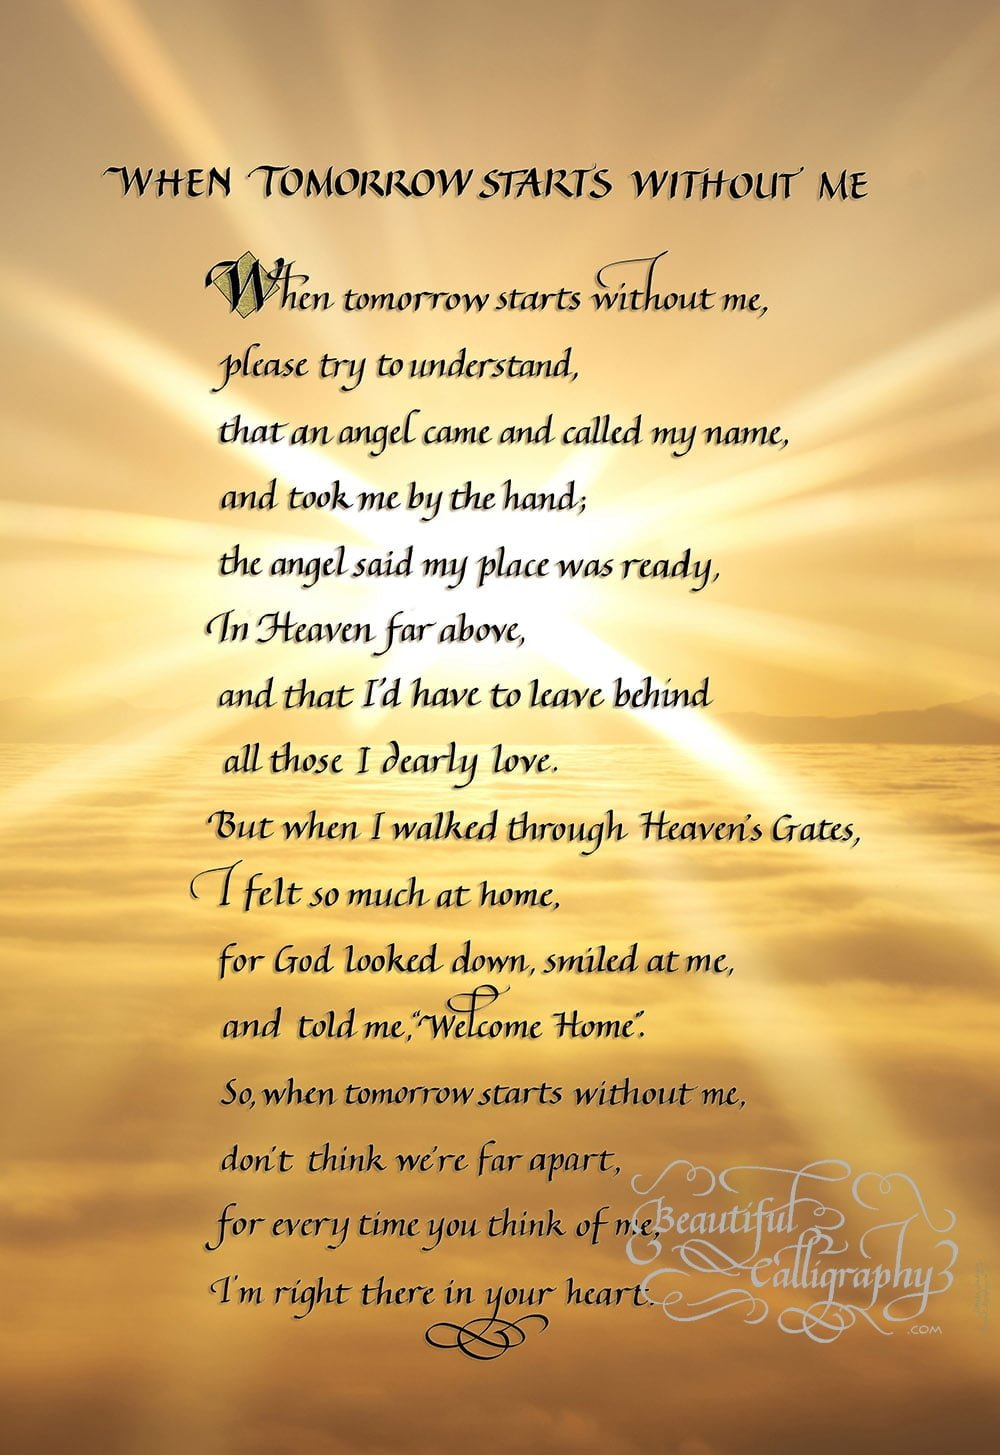 Memorial Poem- When Tomorrow Comes Without Me written in calligraphy on golden sky background